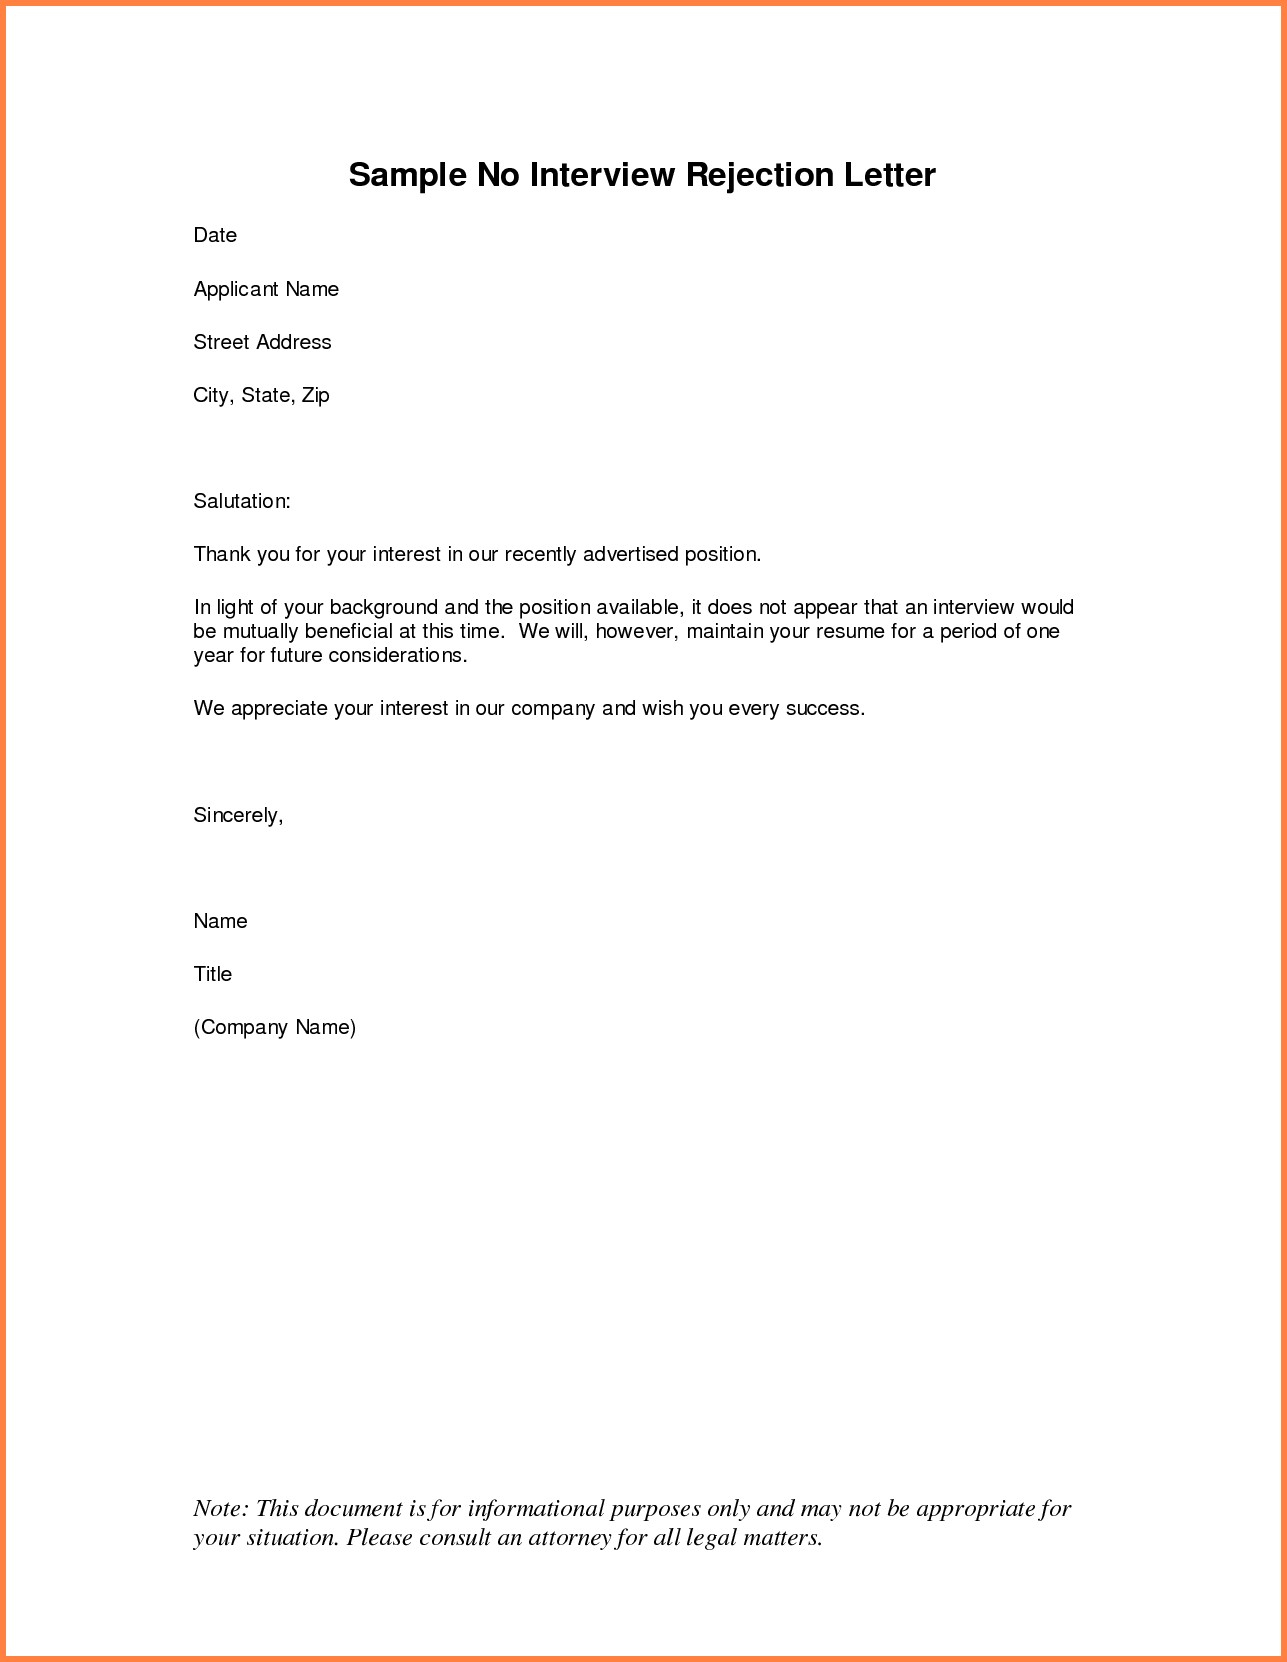 material rejection letter format images letter format formal example. Black Bedroom Furniture Sets. Home Design Ideas